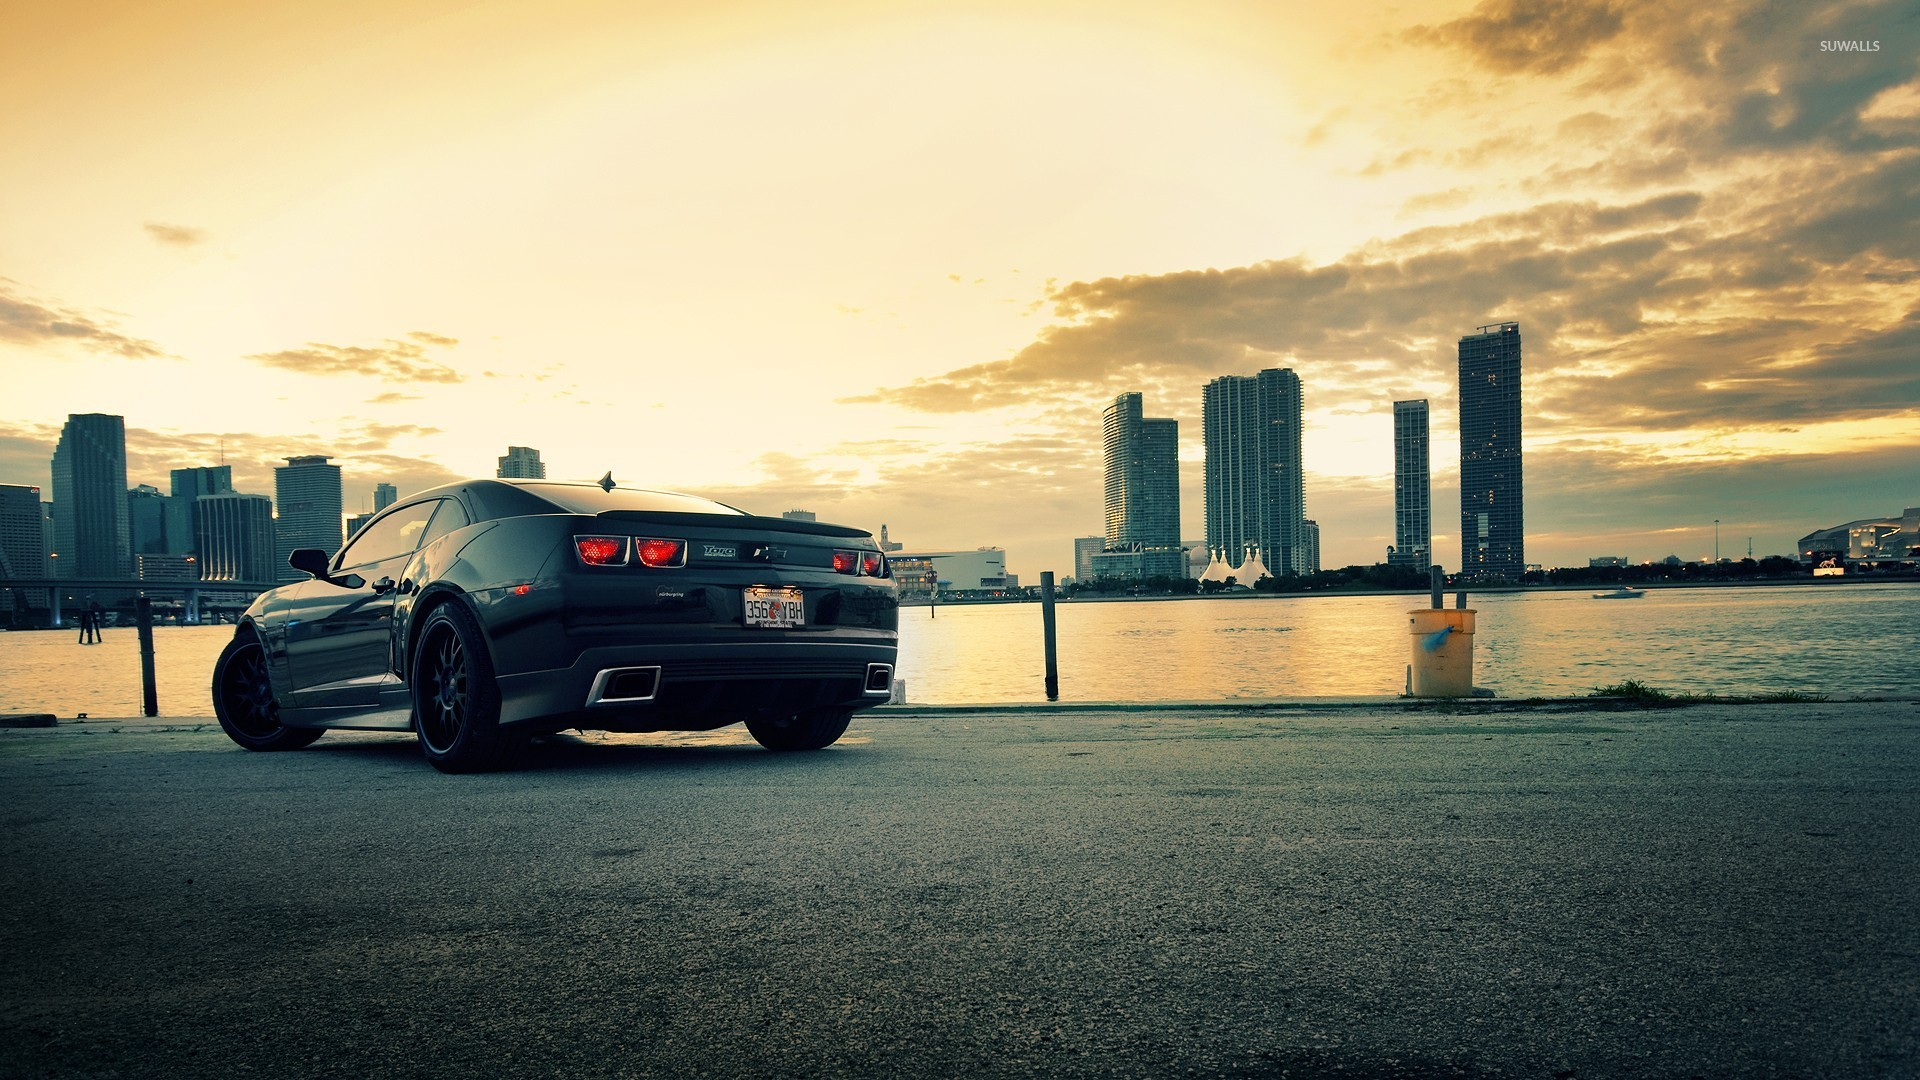 Back Side View Of A Chevrolet Camaro At Sunset Wallpaper